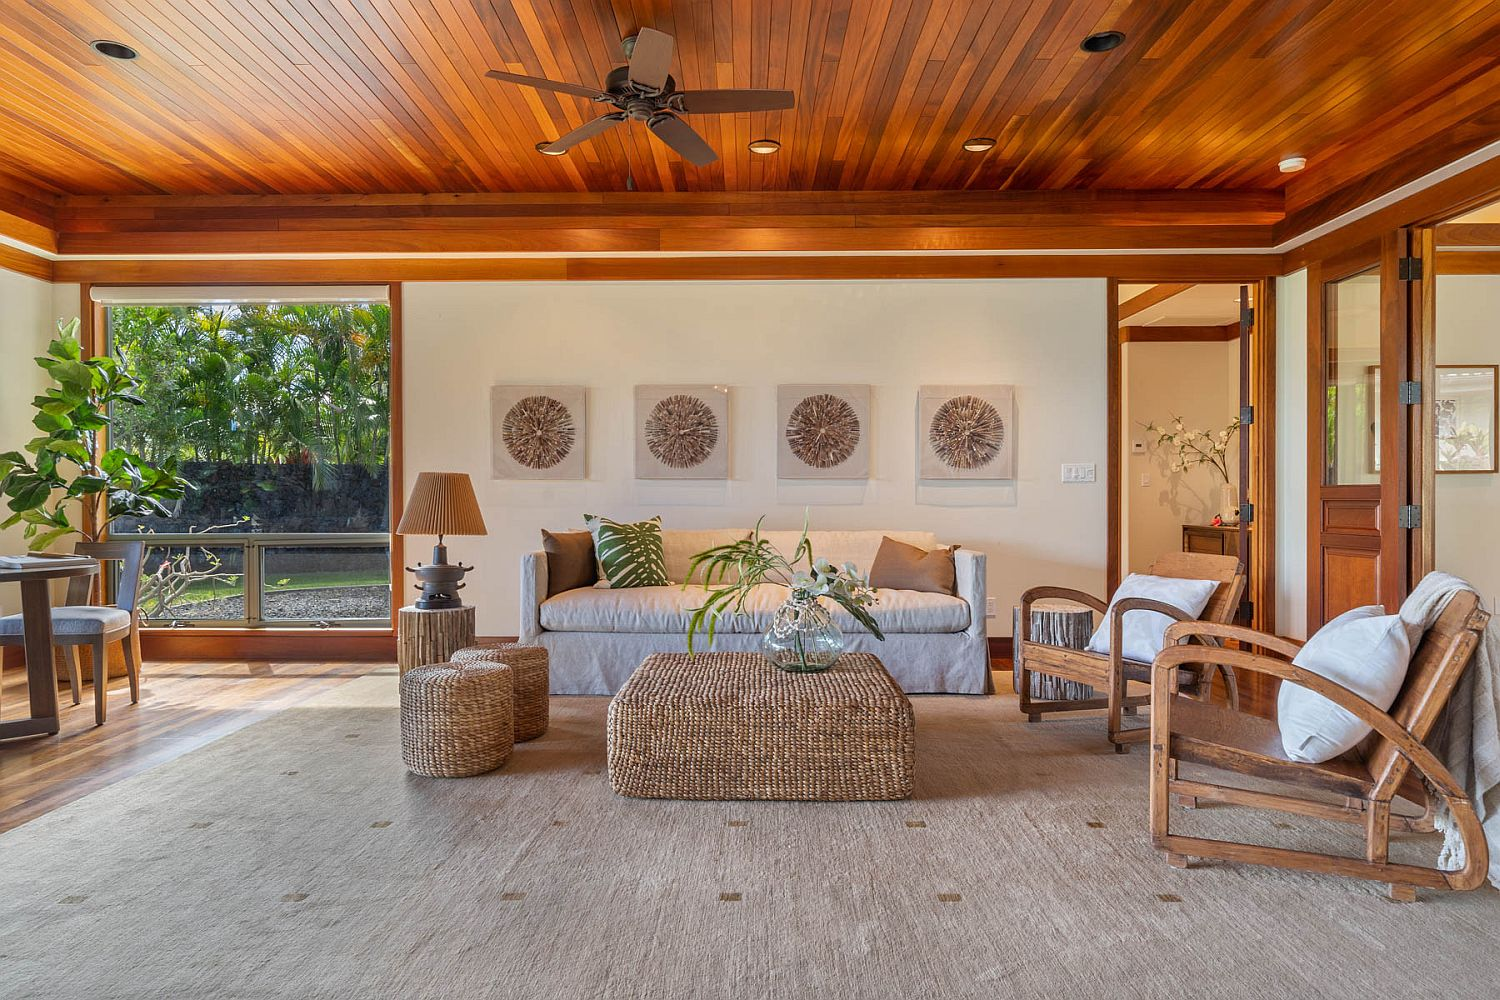 Decor in rattan, wood and bamboo give the room a more authentic tropical appeal